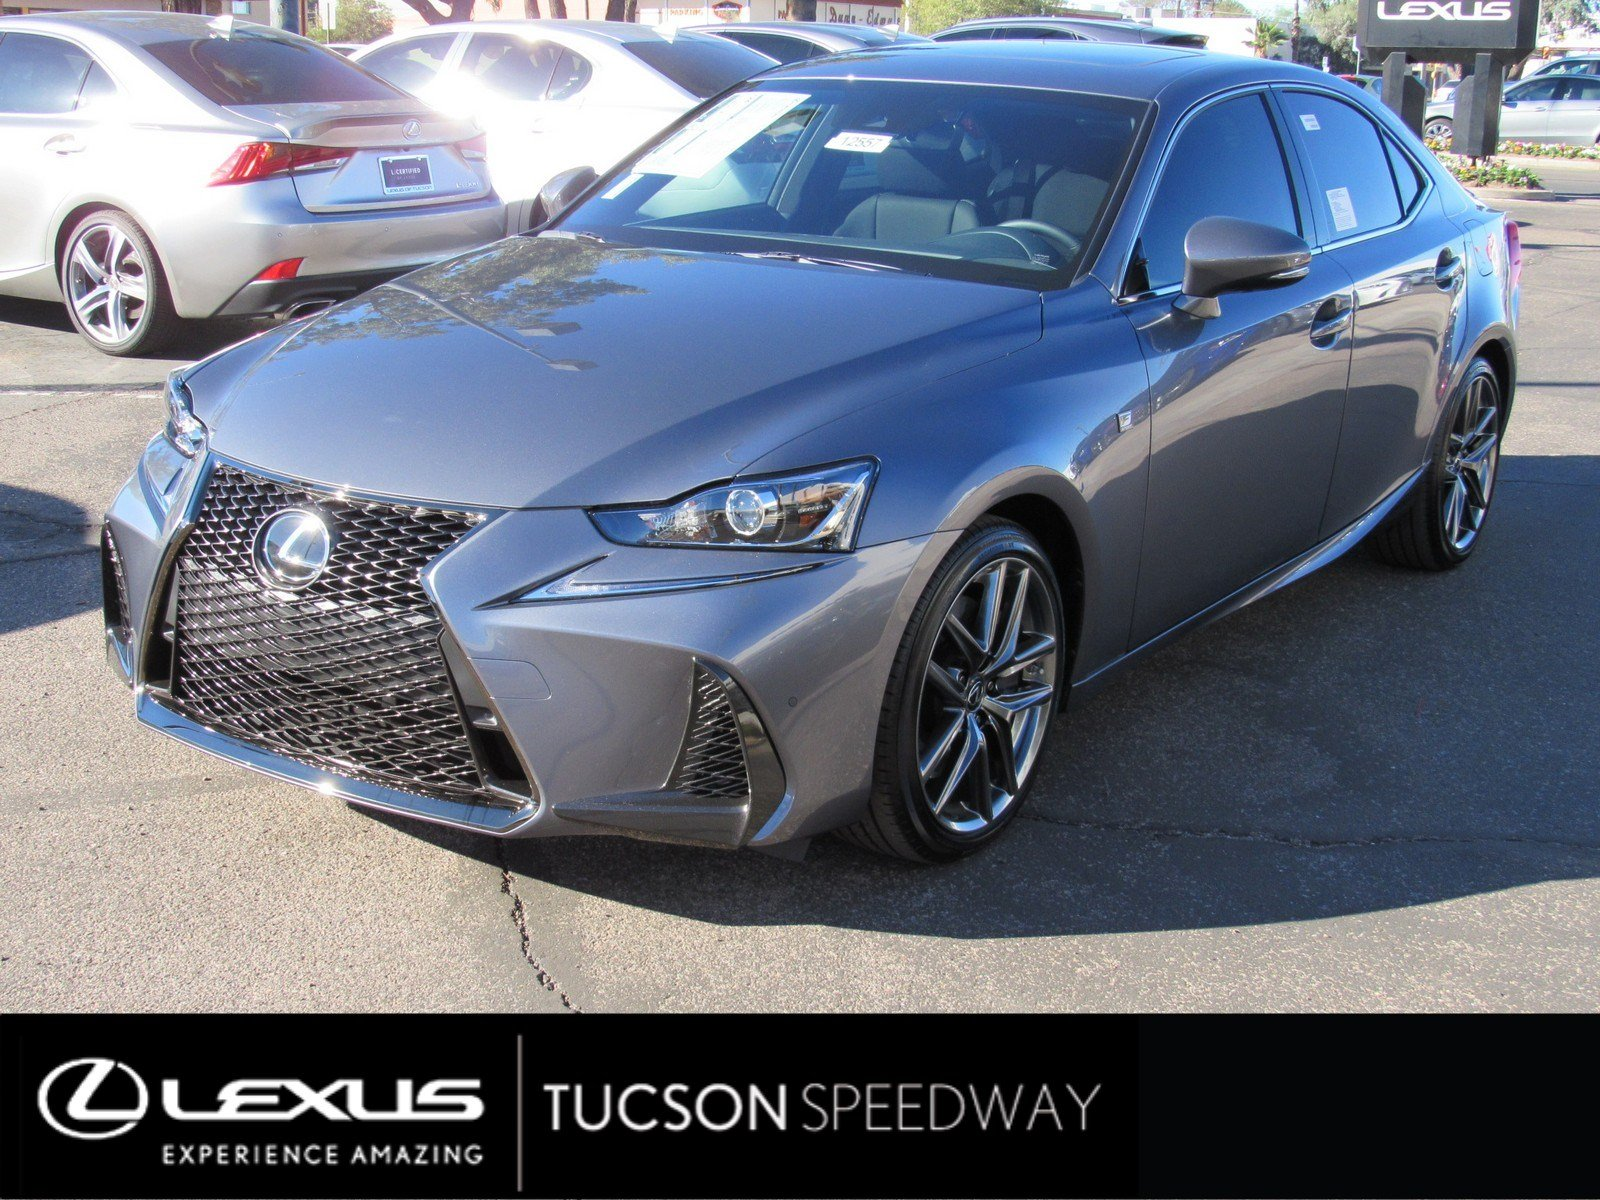 New 2019 Lexus IS 300 F SPORT 4dr Car in Tucson